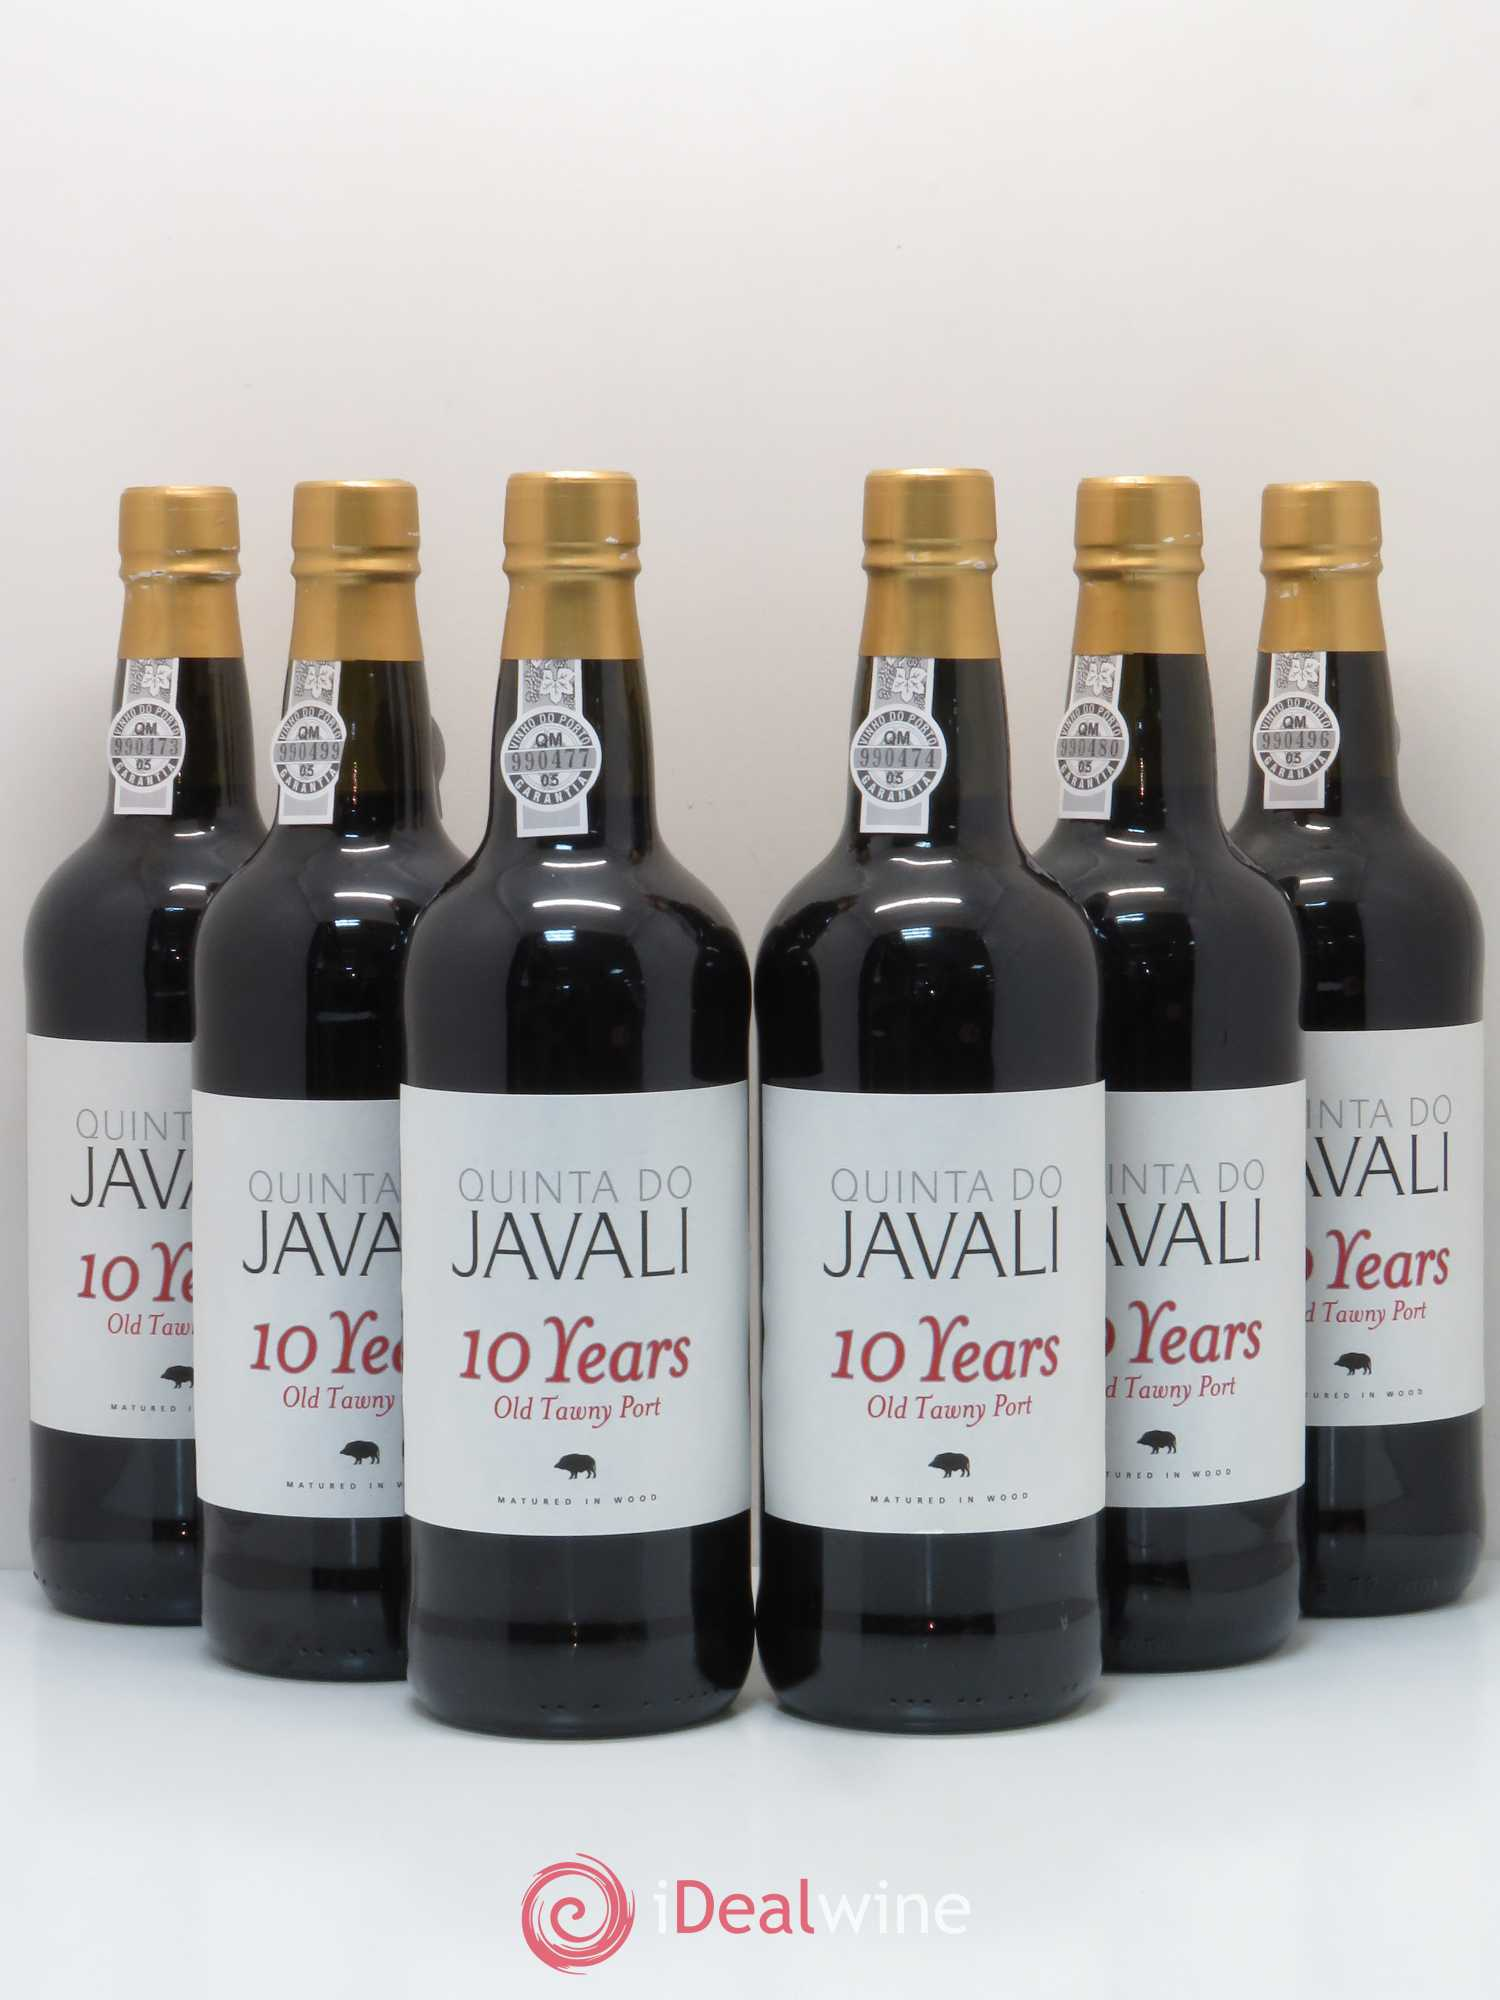 Porto Quinta do Javali 10 years Old Tawny Port  - Lot of 6 Bottles